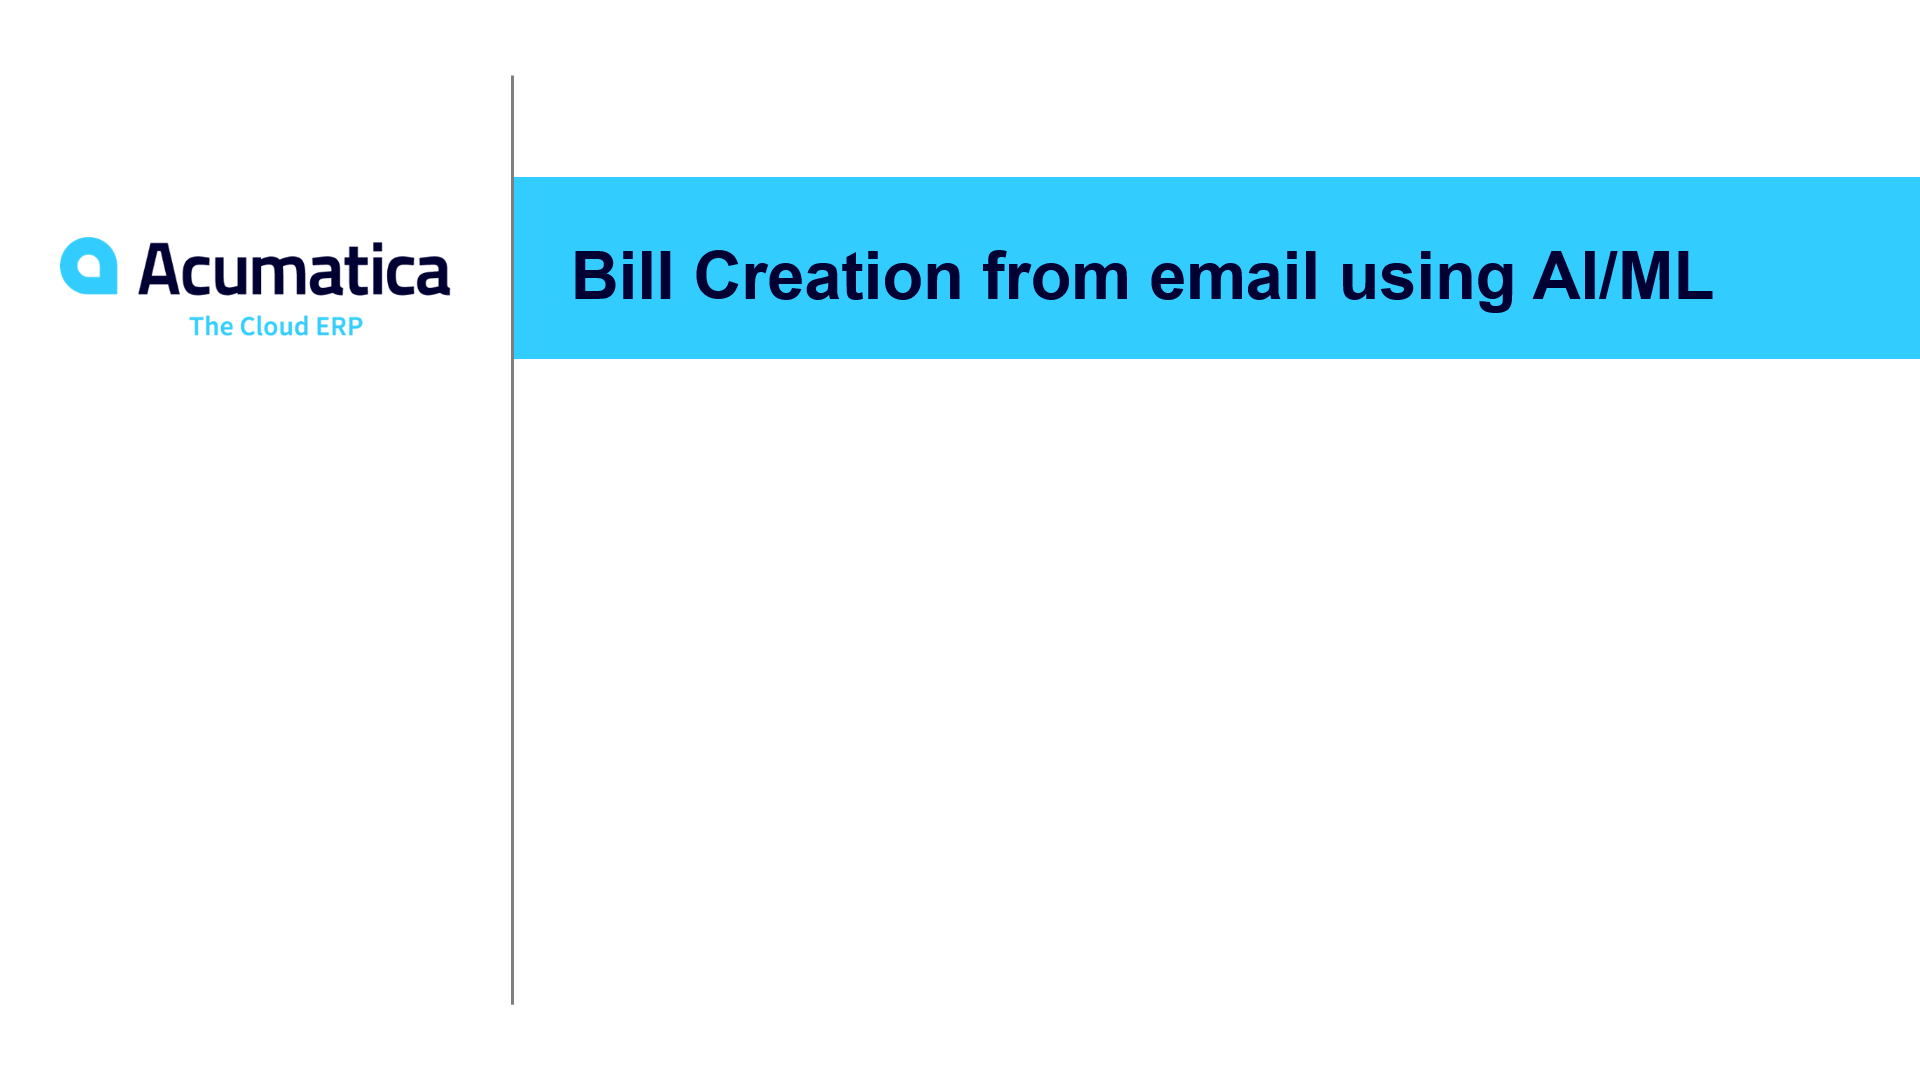 Bill Creation from email using AI/ML (January 2020)